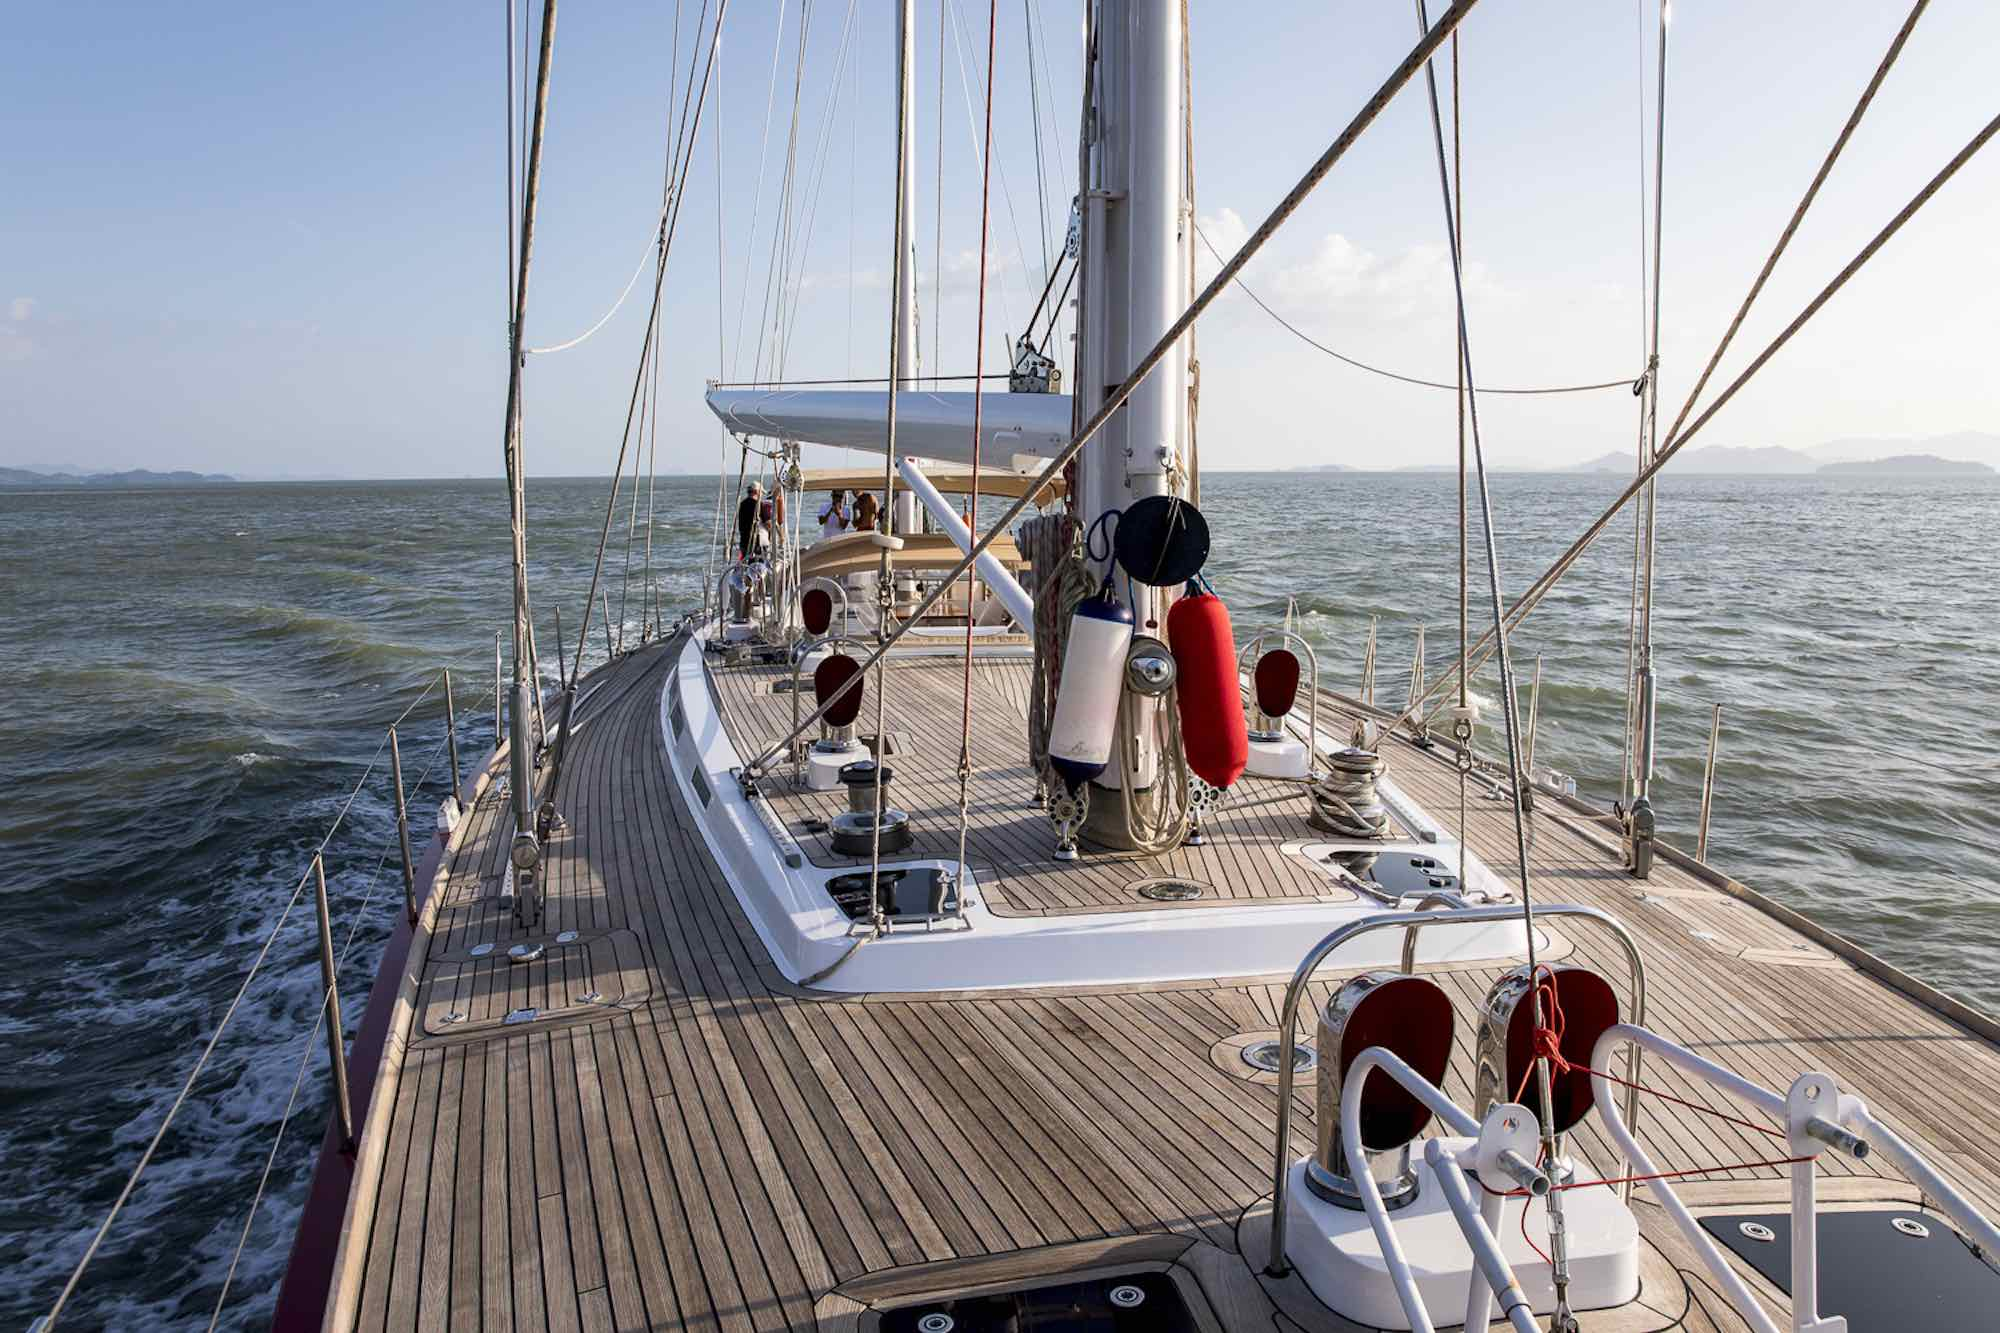 Aphrodite_bow deck sailing on waving waters island hopping holiday_XS.jpeg